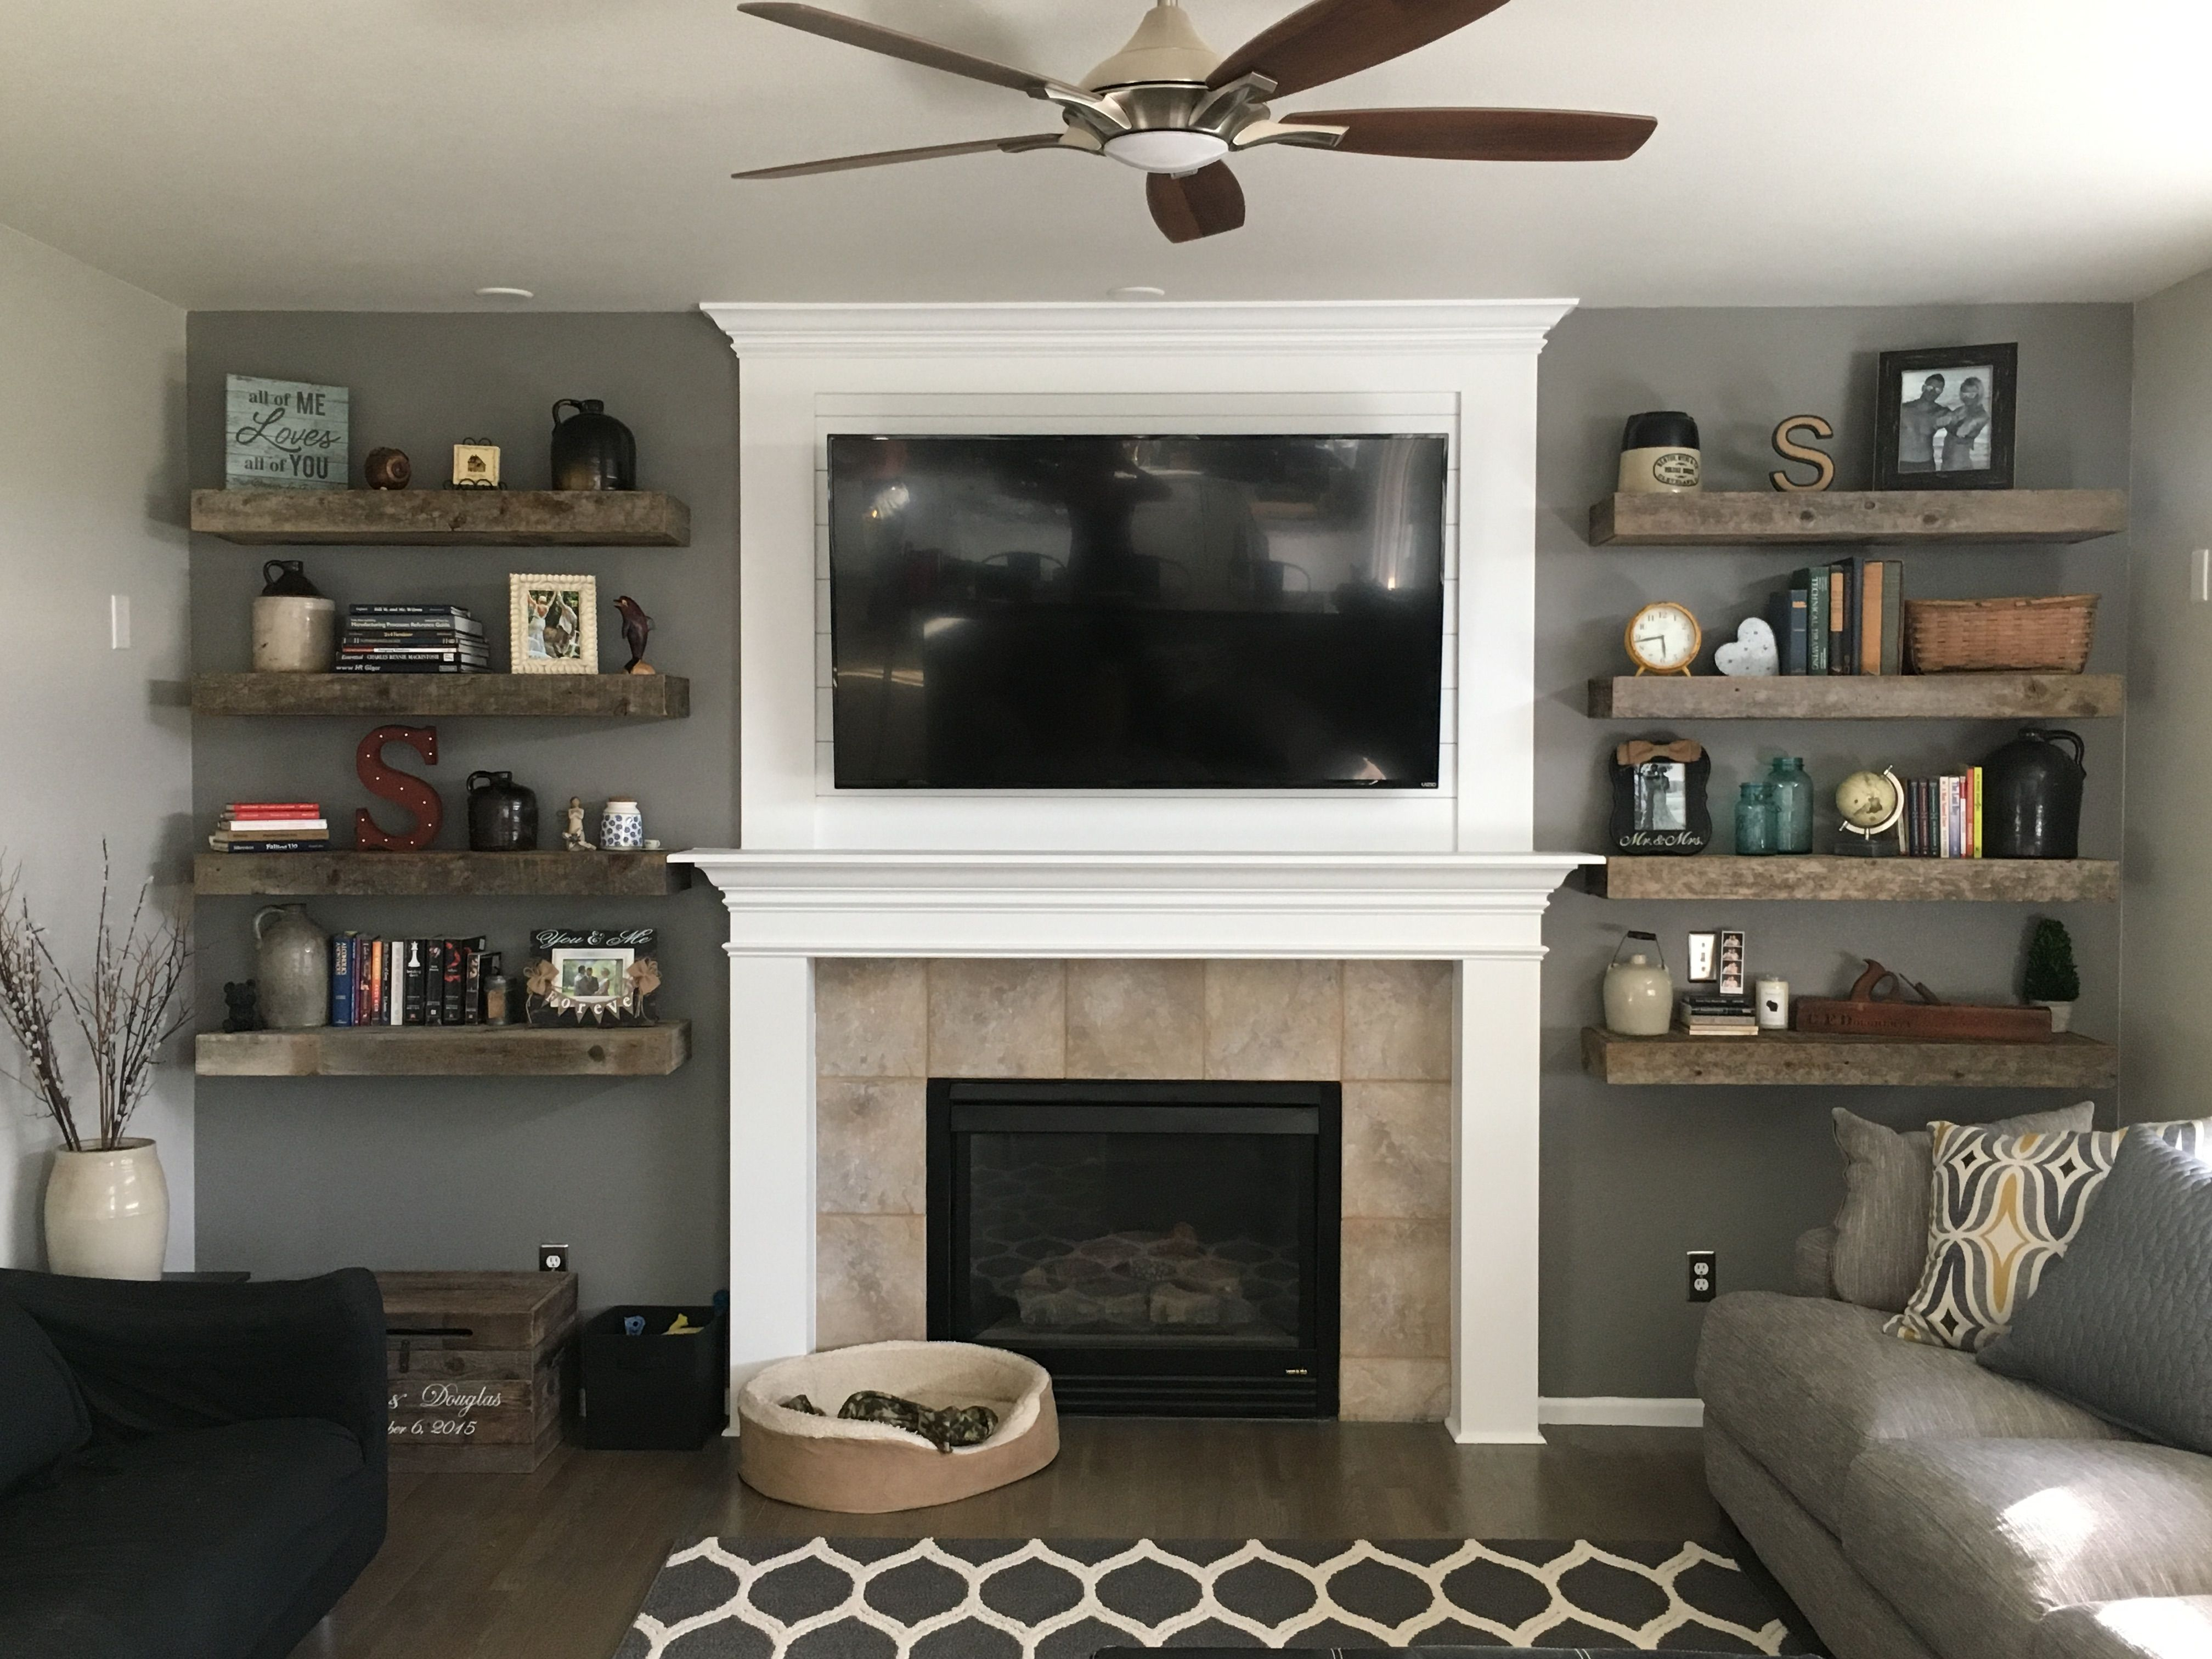 rustic living room barnwood floating shelves shiplap fireplace books and decor home sweet husband did the kitchen cupboard tidy stainable single standing shelf entryway wall with